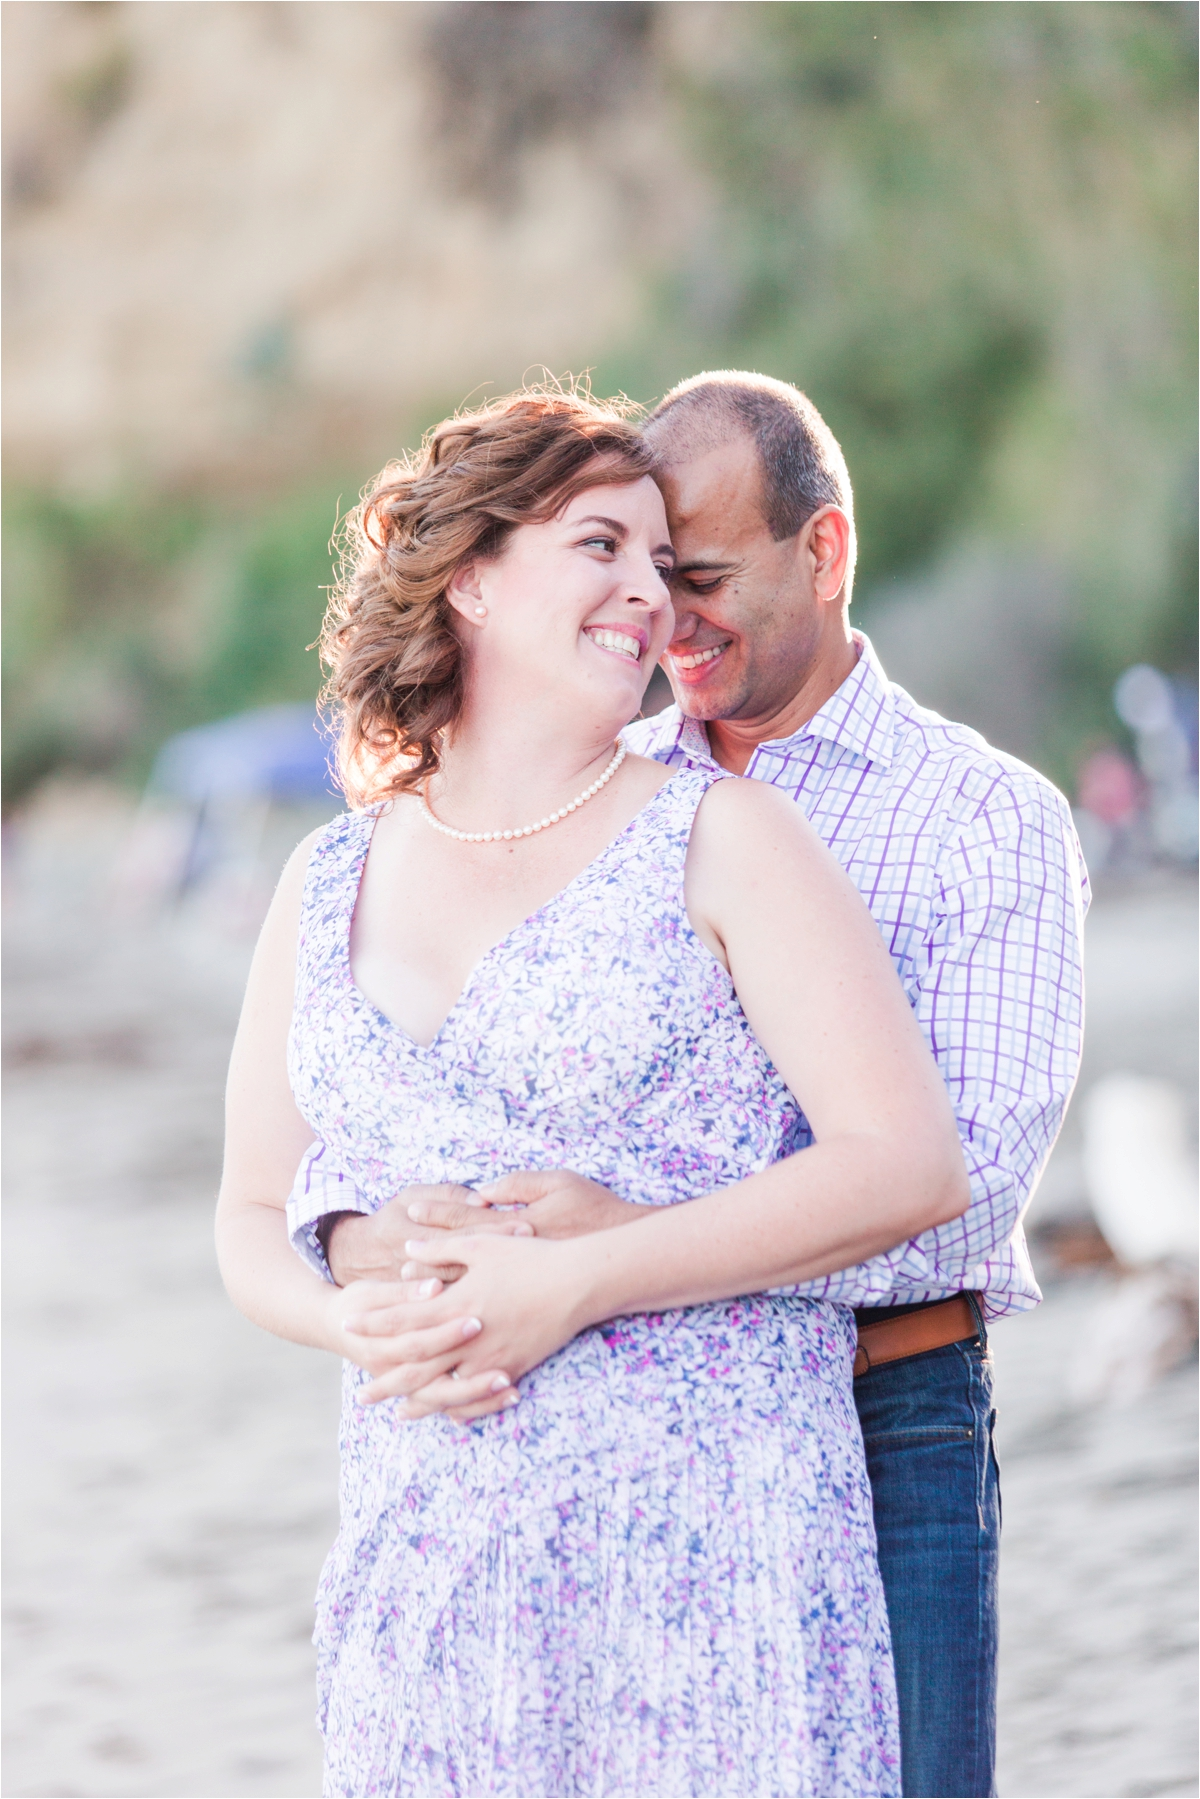 New Brighton beach engagement pictures by Briana Calderon Photography_0263.jpg